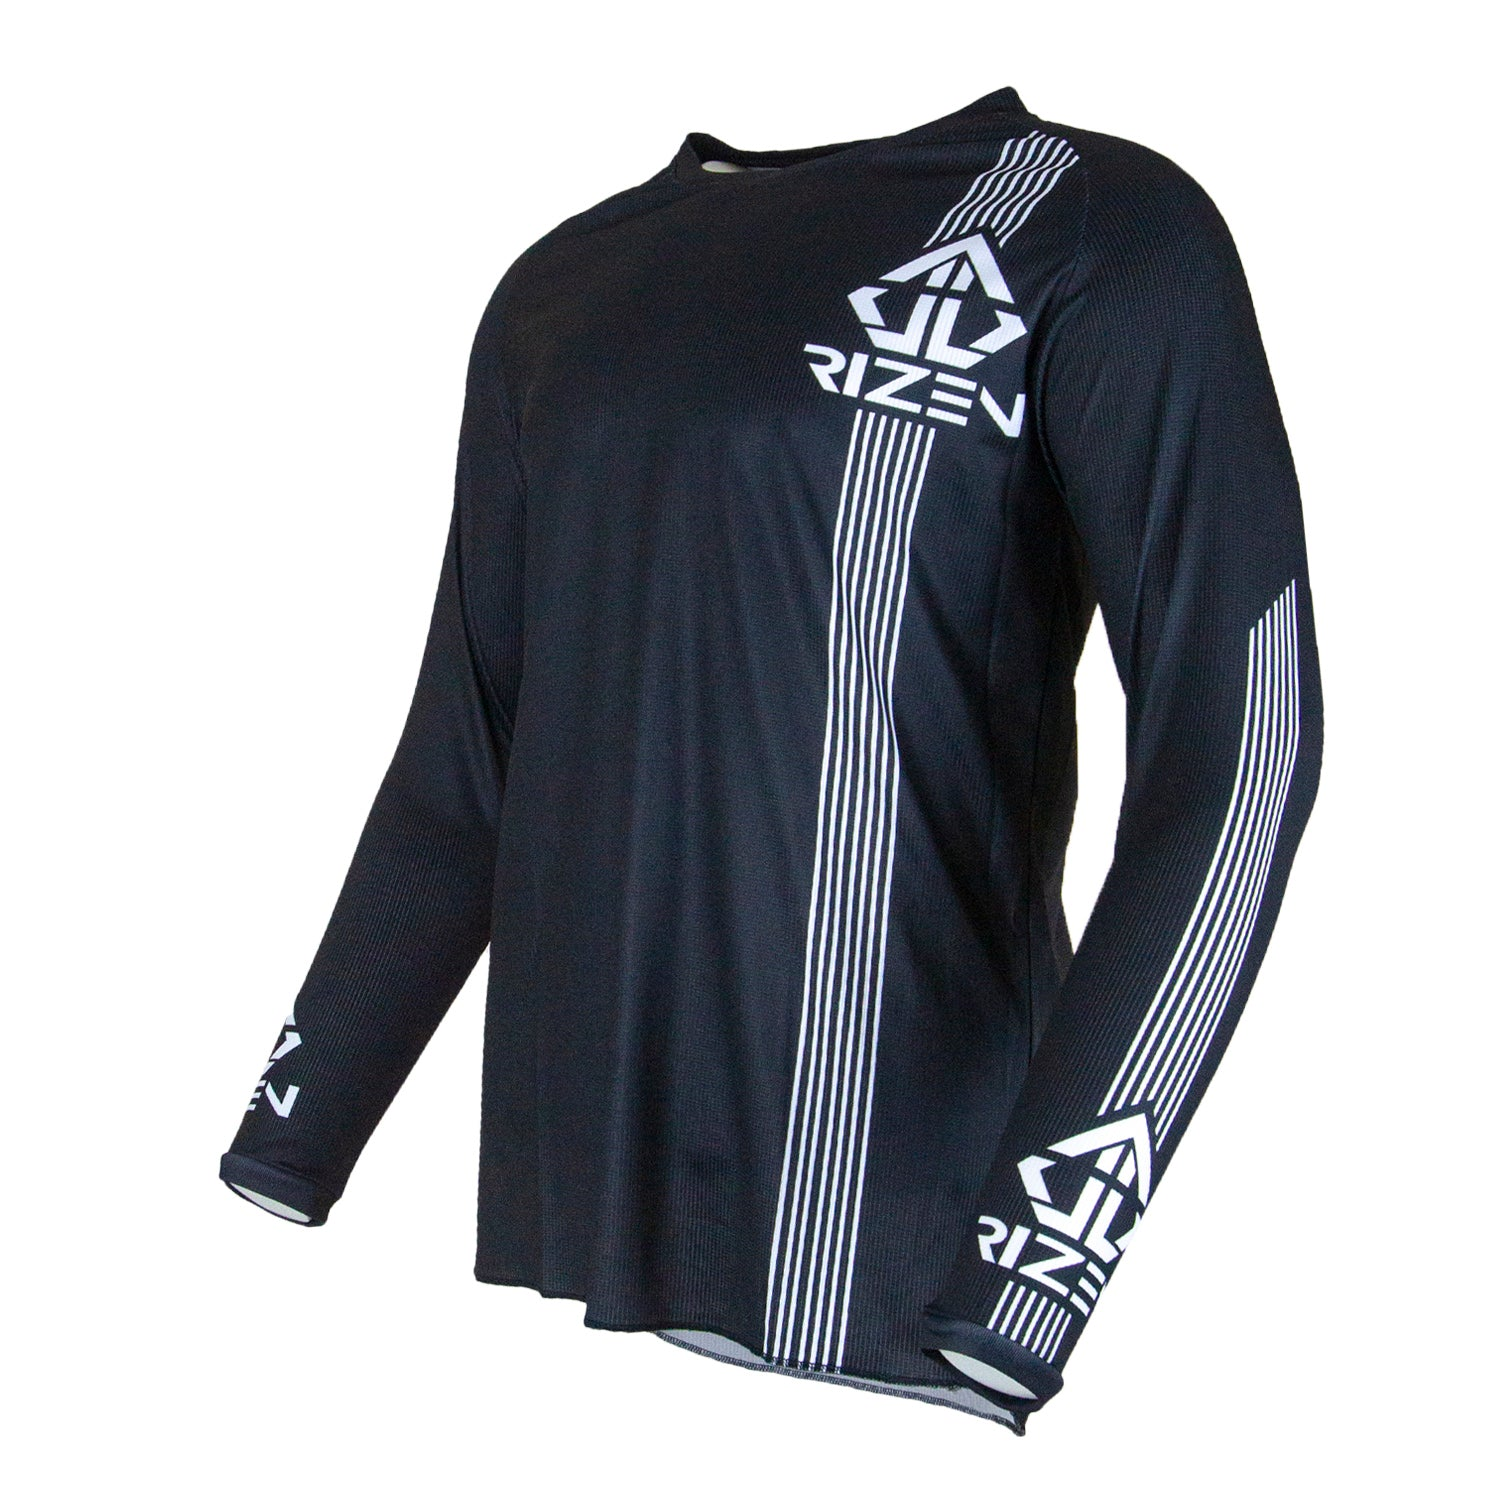 PHAZE 1 JERSEY YOUTH - BLACK/WHITE